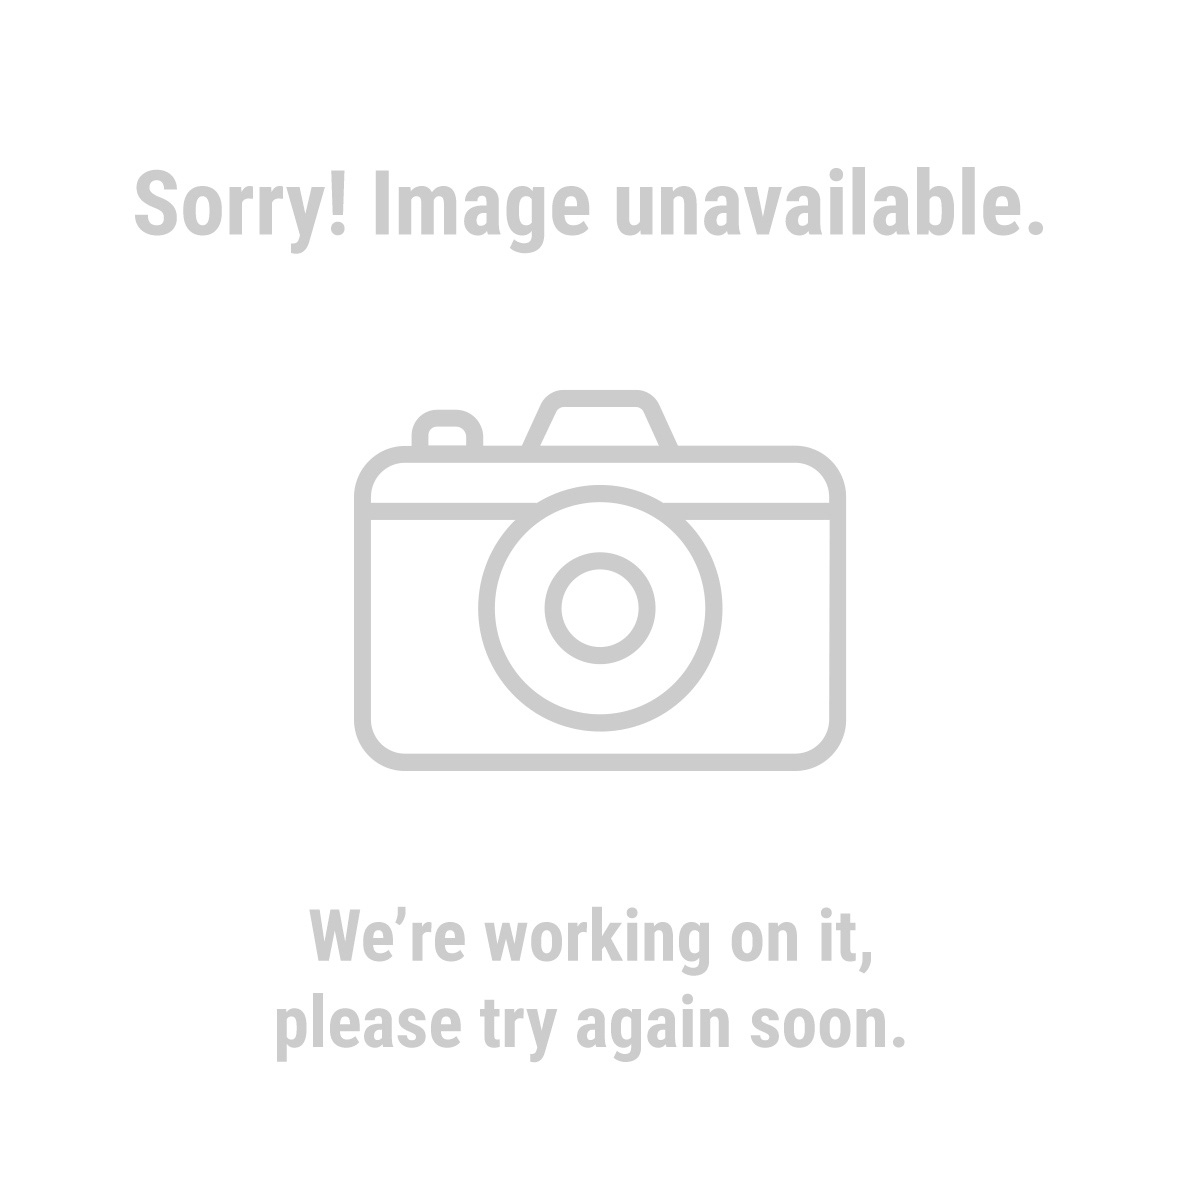 Chicago Electric Power Tools 63123 6.5 Amp Heavy Duty Tool-Free Variable Speed Orbital Jig Saw With Laser